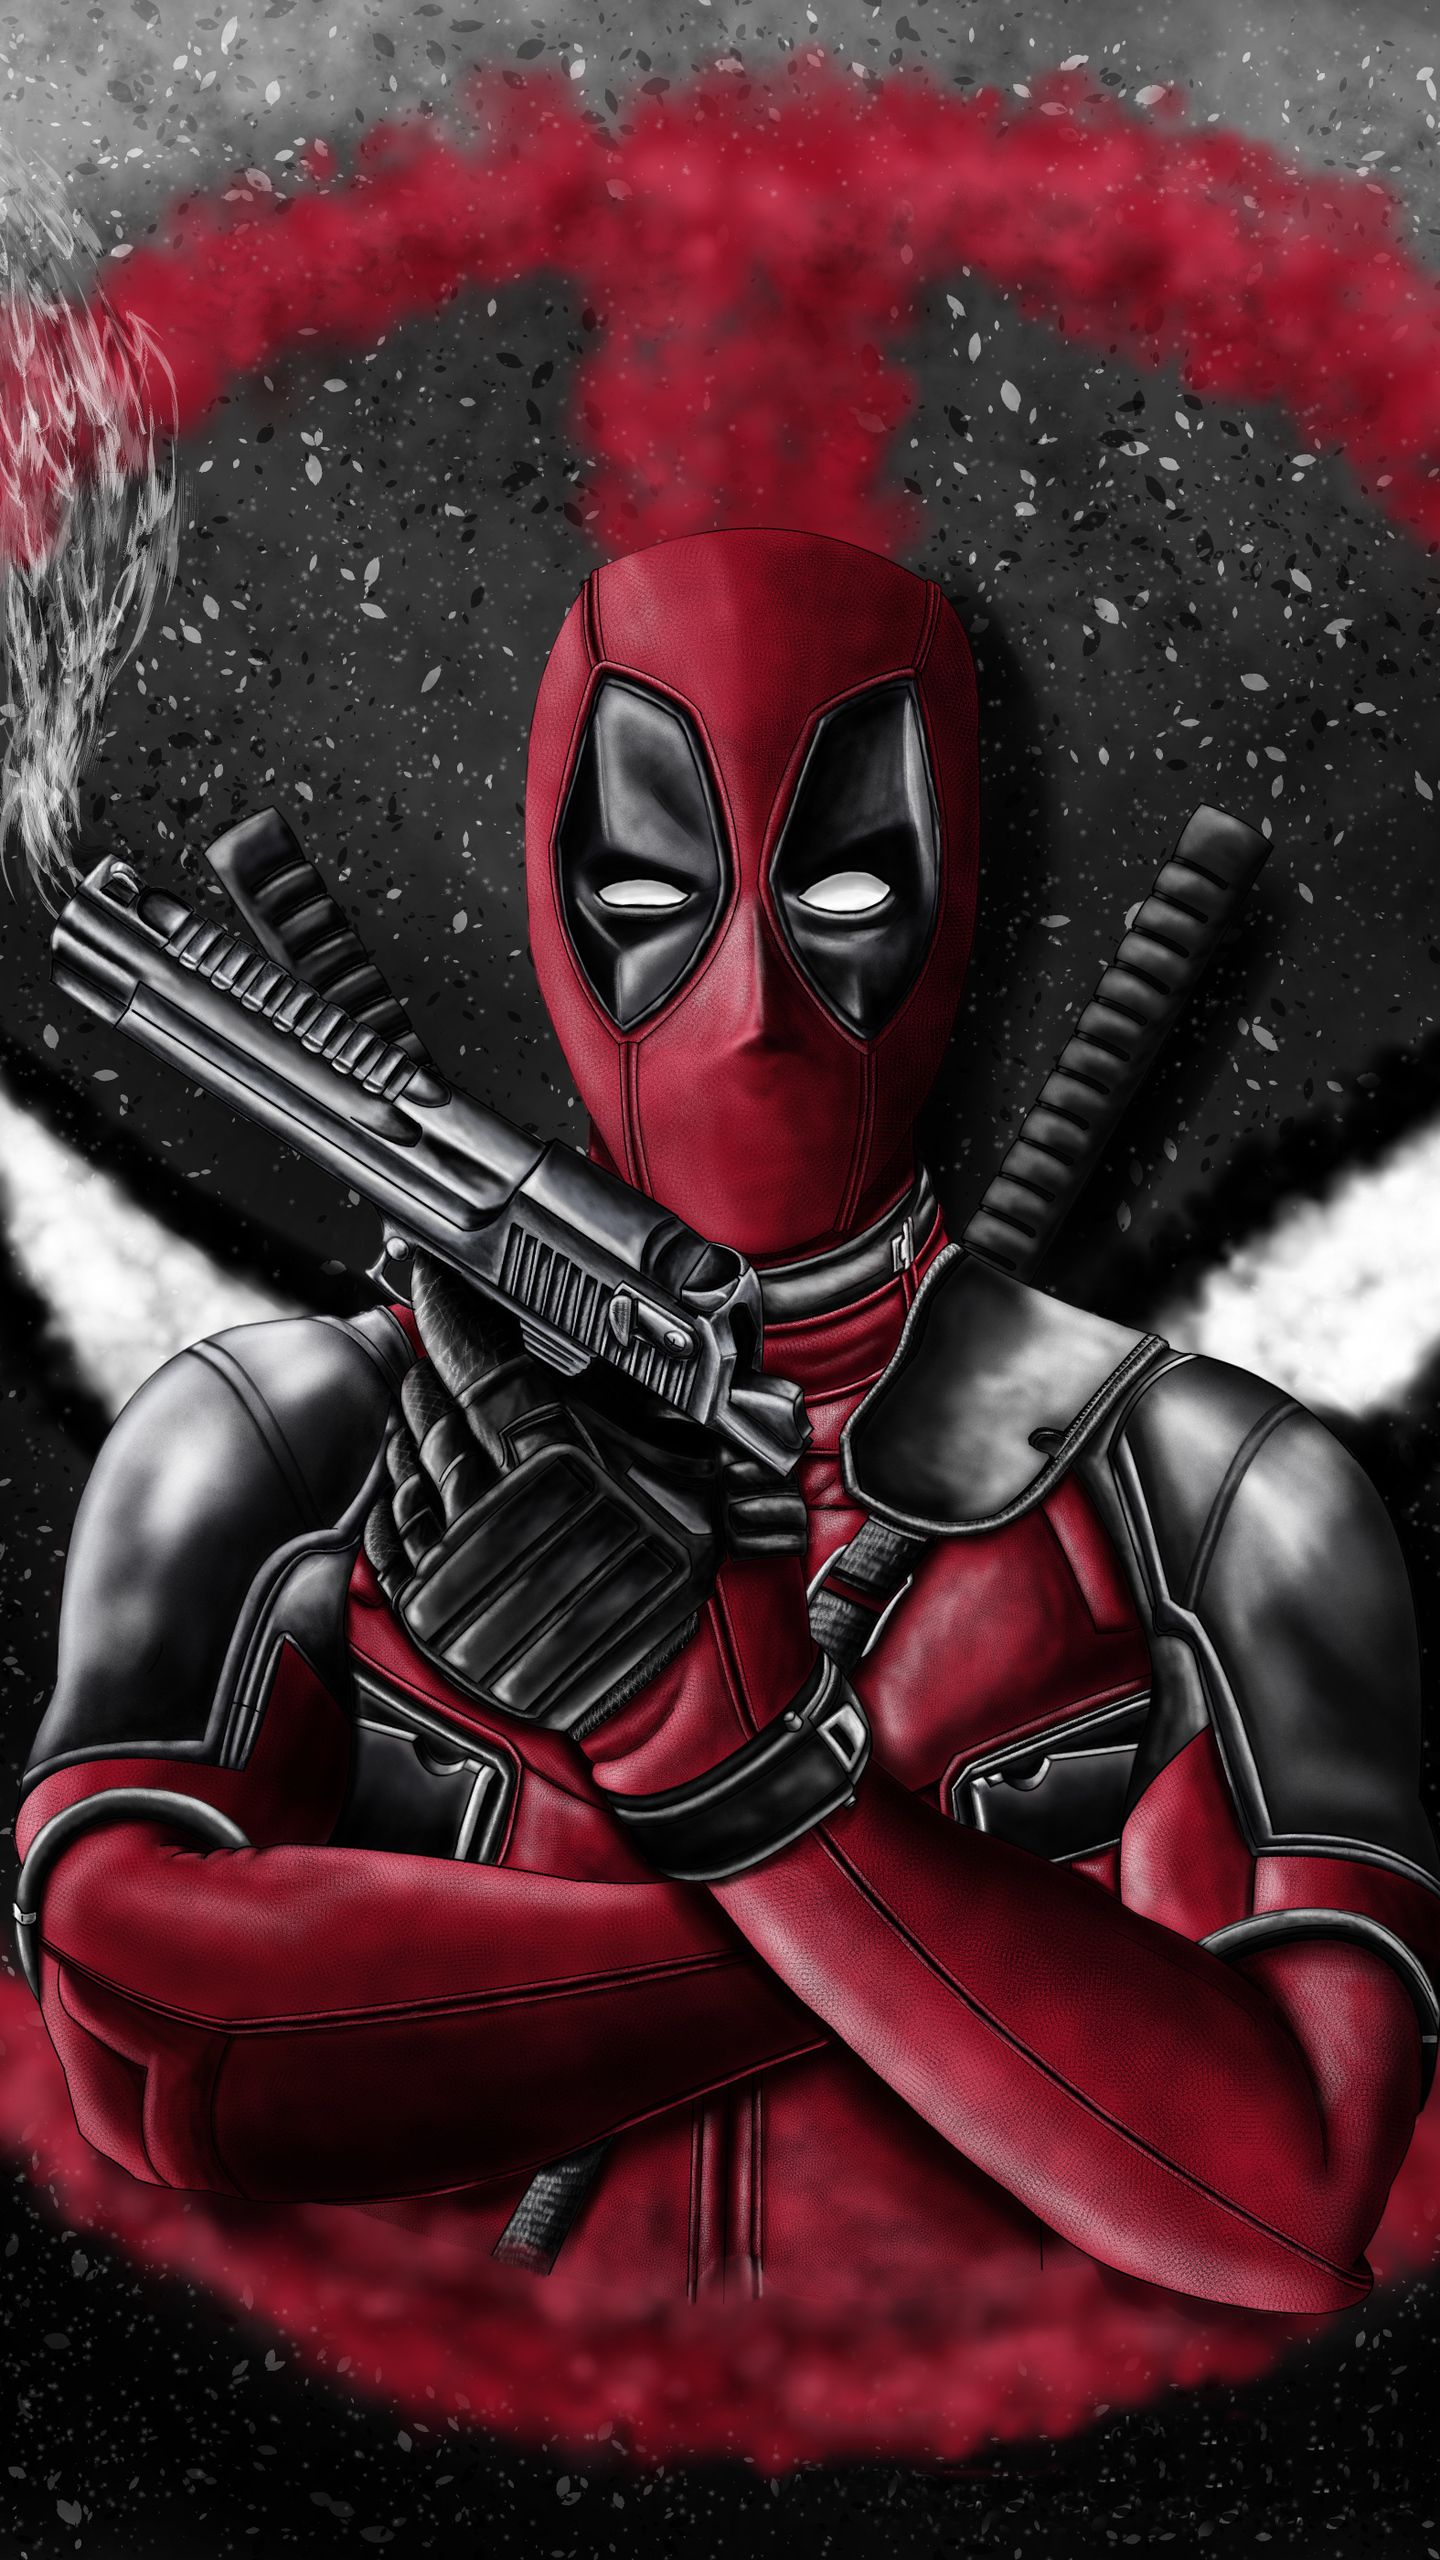 WHICH DEADPOOL CHARACTER ARE YOU? TAKE THIS QUIZ TO KNOW